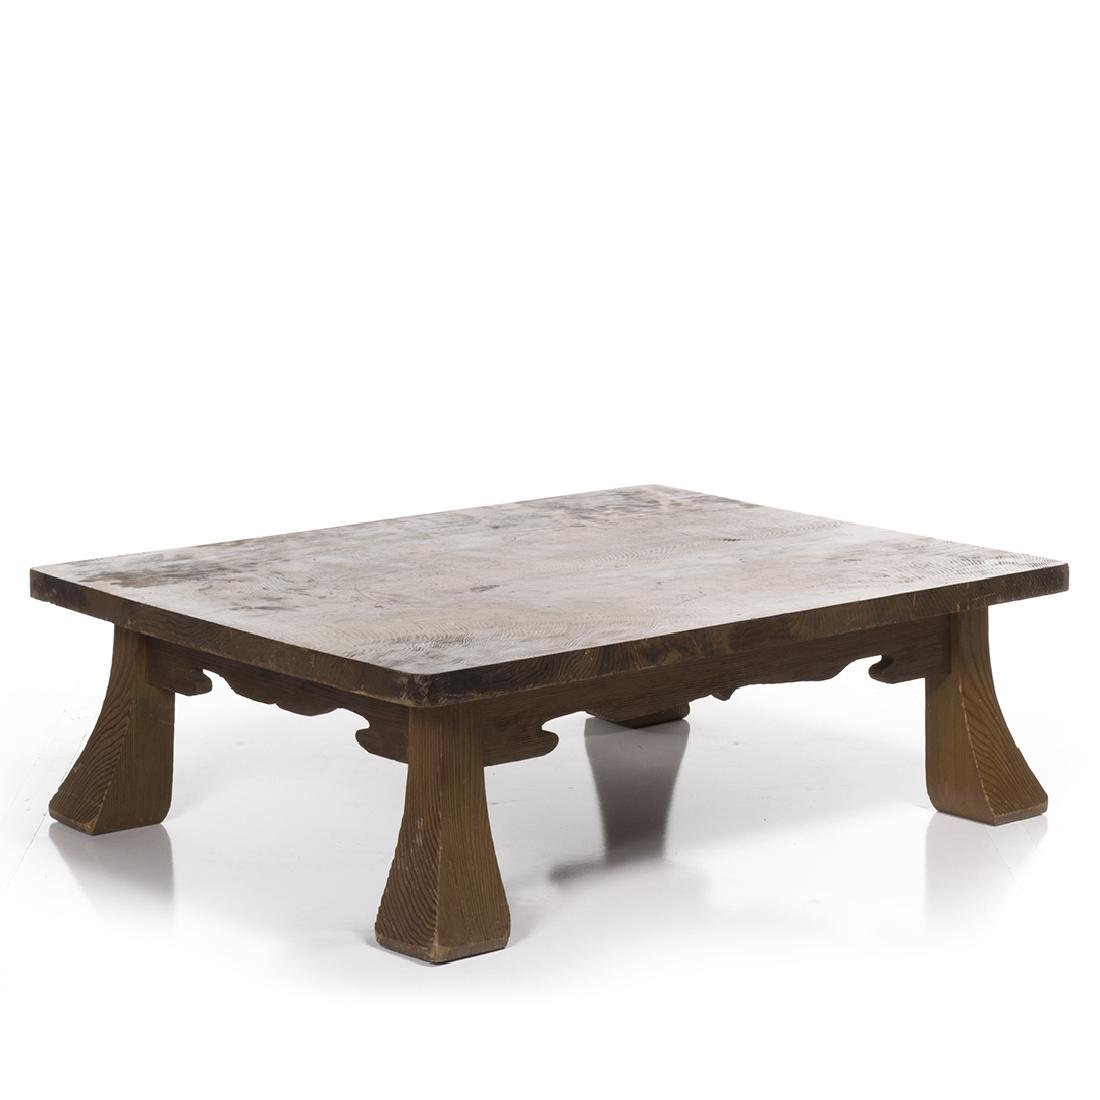 Low Craftsman Style Table - 2